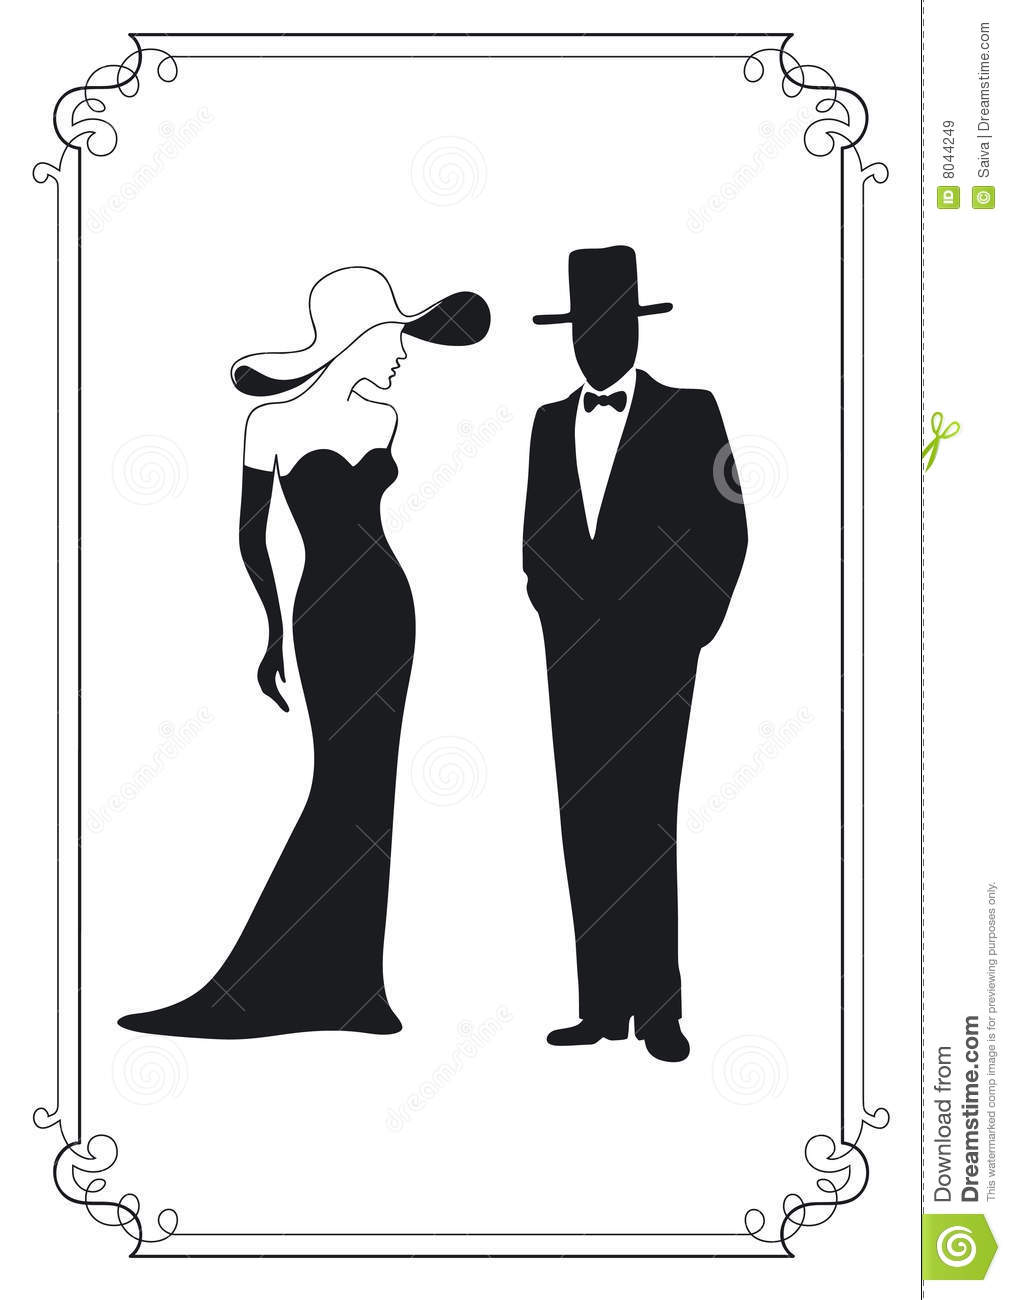 Silhouette of a couple at restaurant royalty free stock photos image - Man And Woman Silhouette Royalty Free Stock Images Image